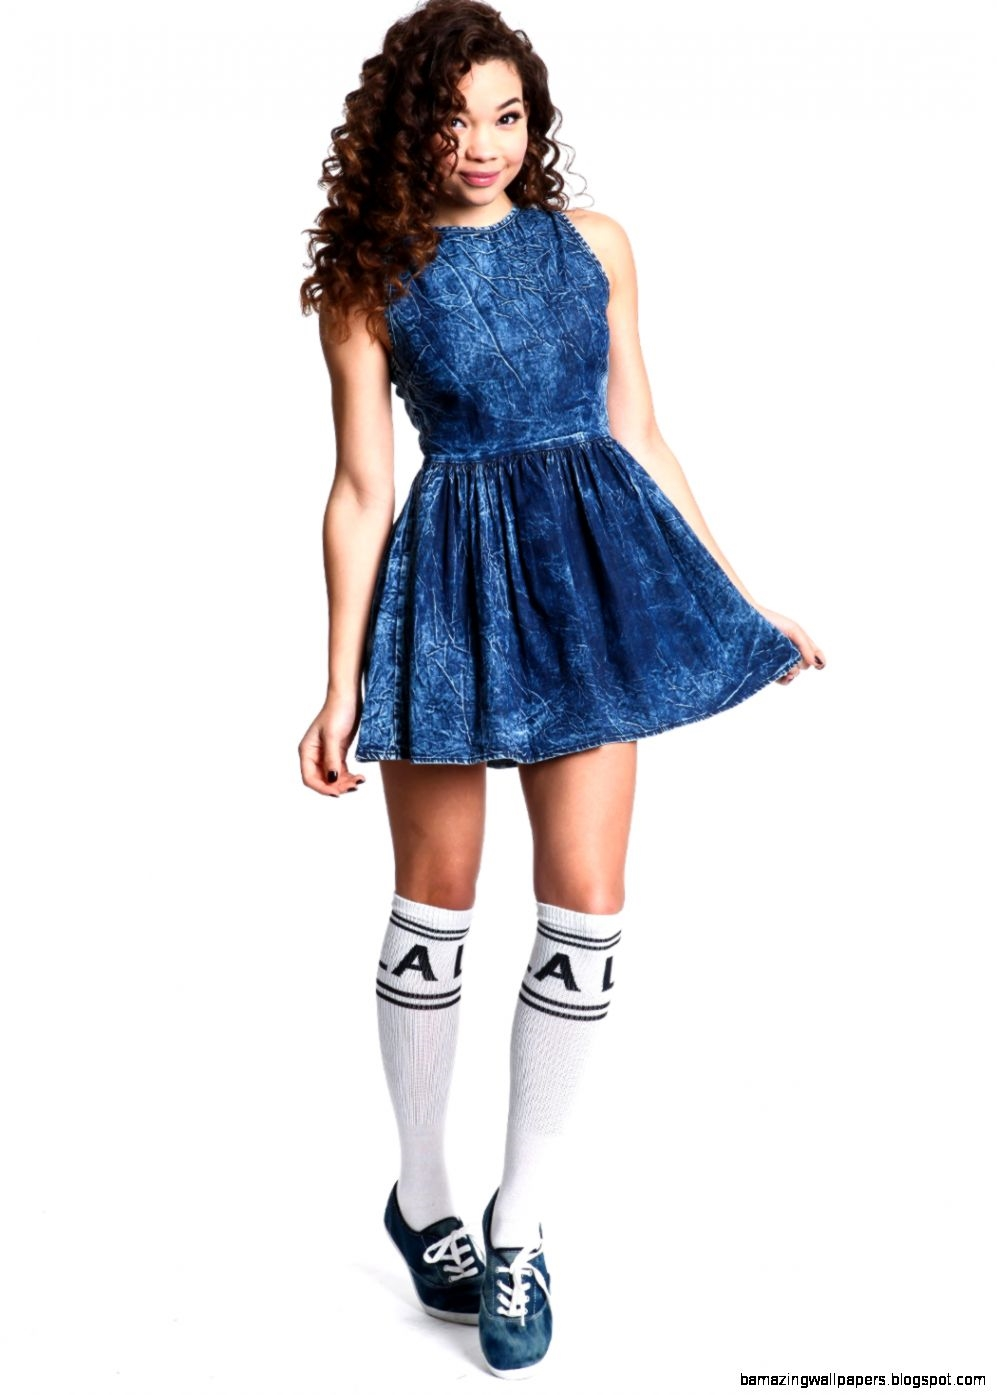 Teen Fashion Websites: Shopping Guide. We Are Number